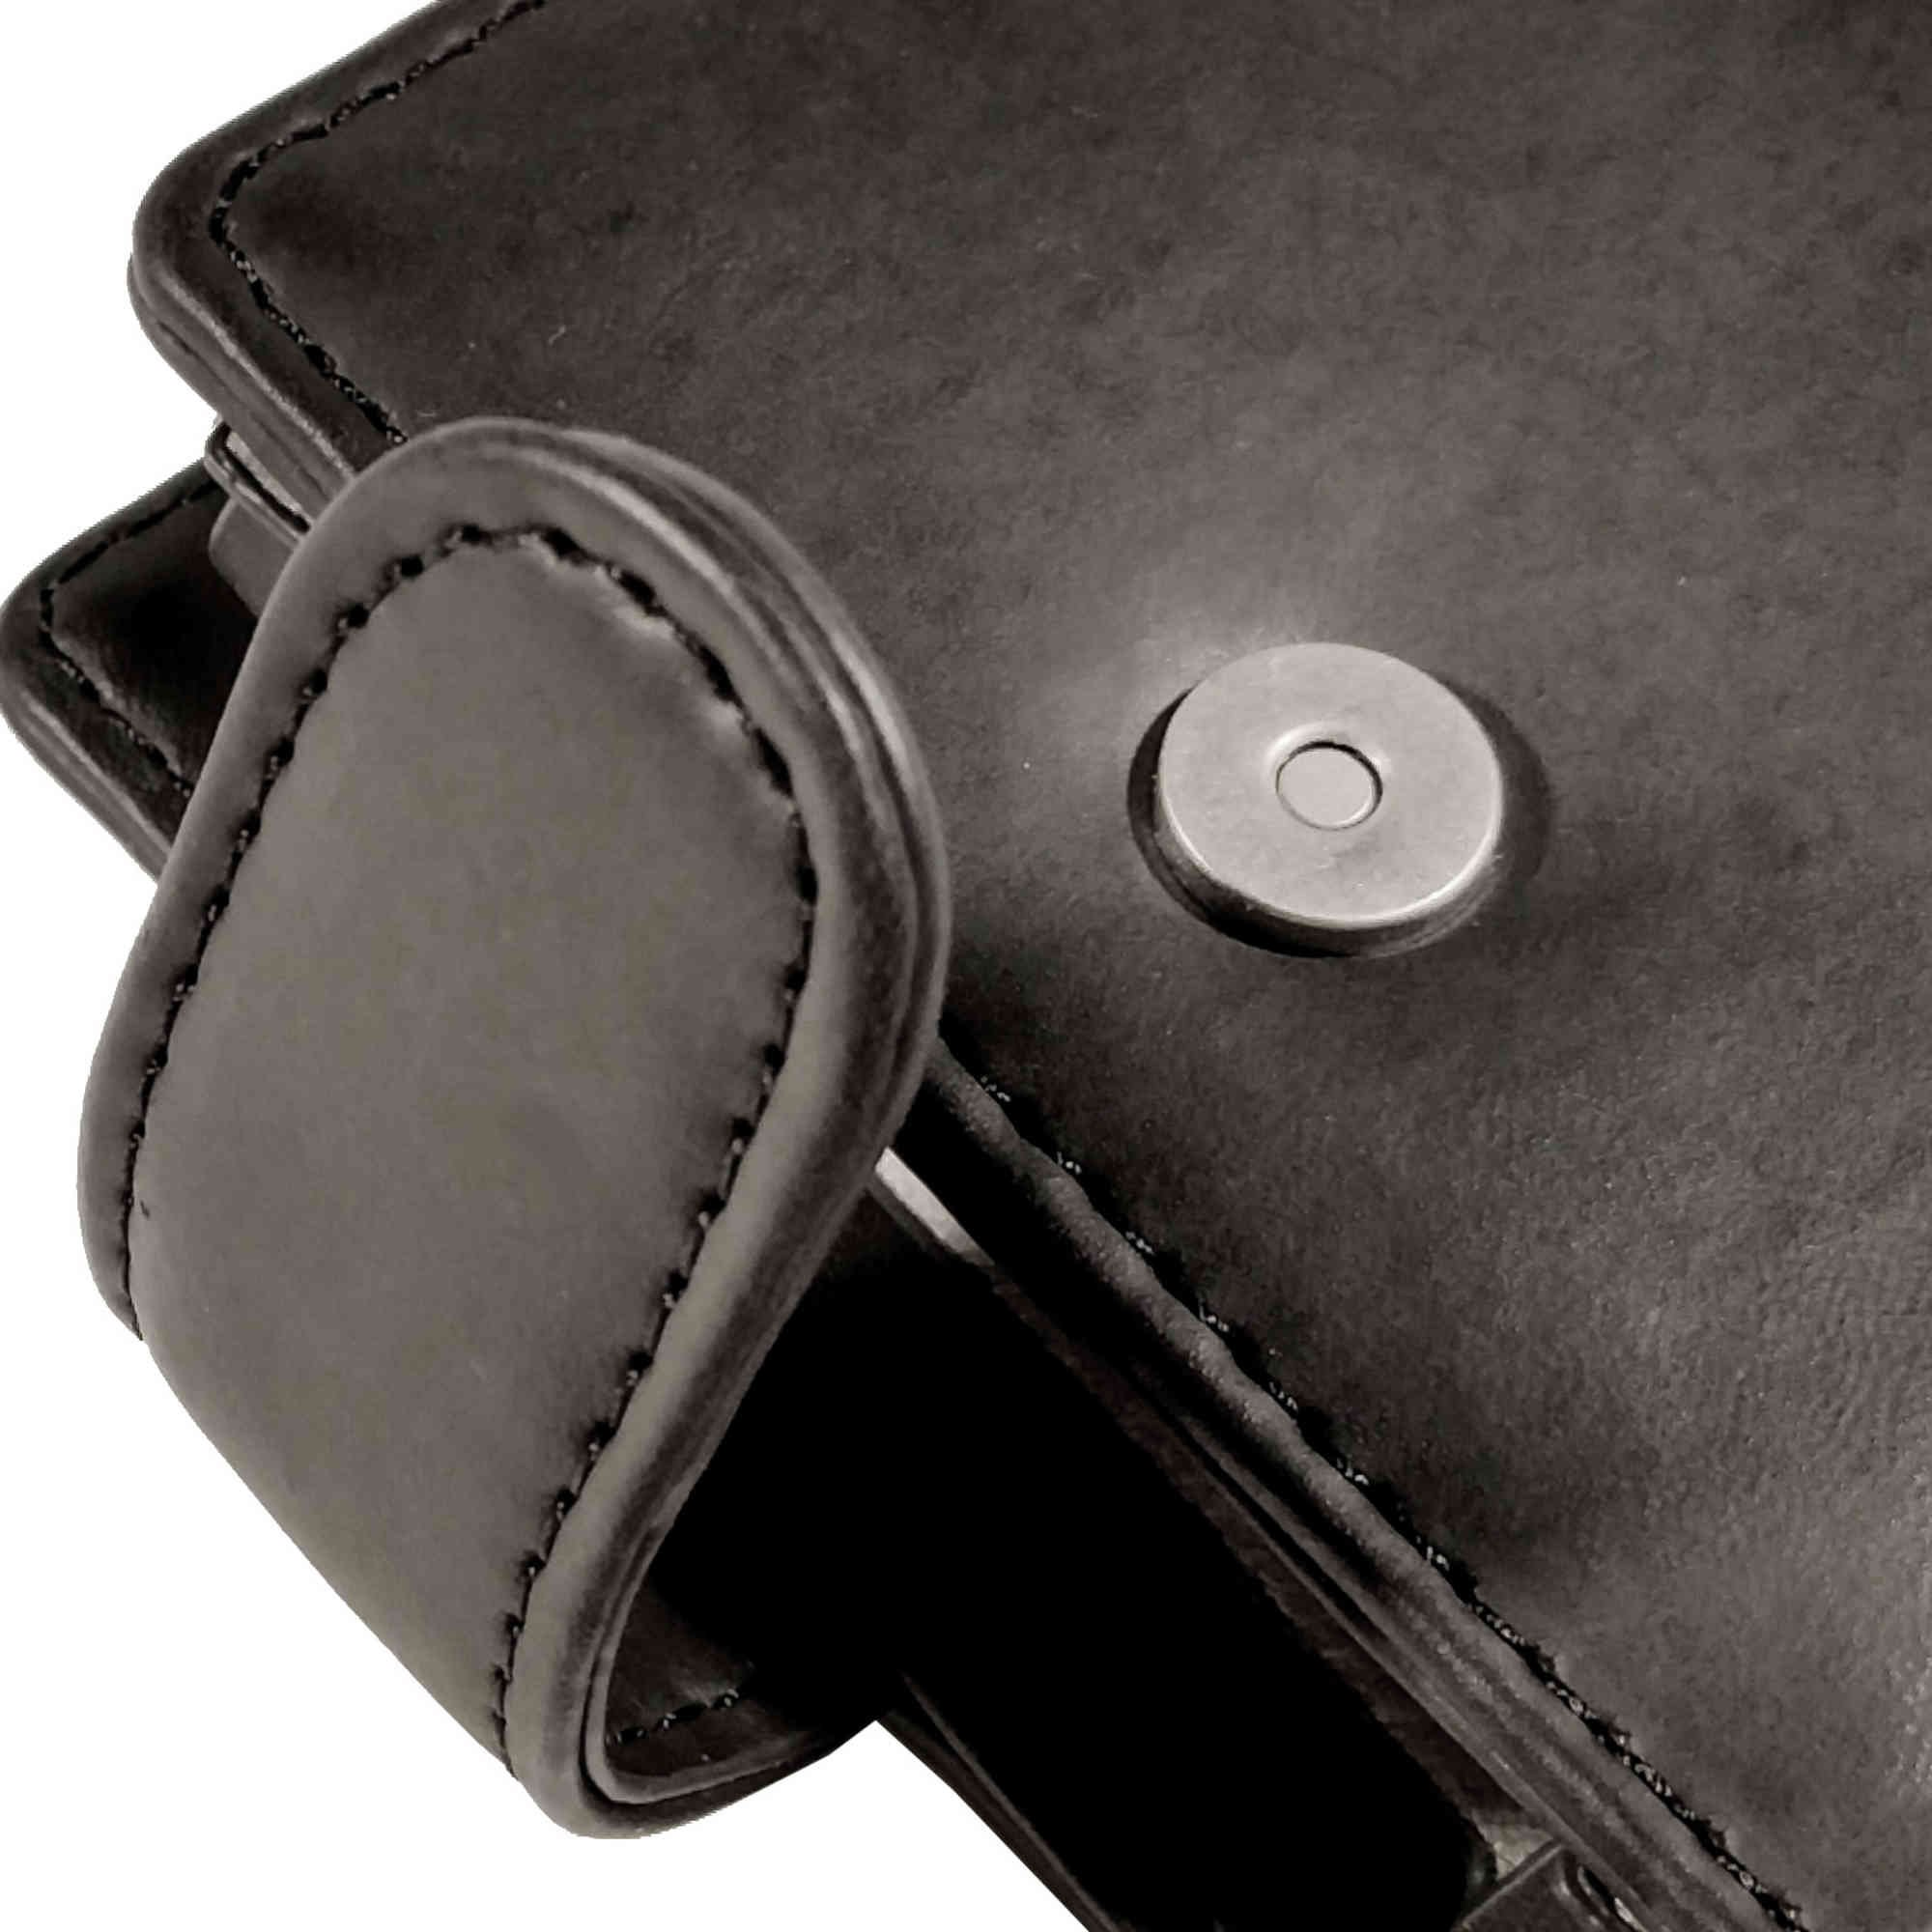 Tuff-luv Genuine Western Leather Case Cover for Cowon Plenue D - MP3 - Black by Tuff-luv (Image #2)